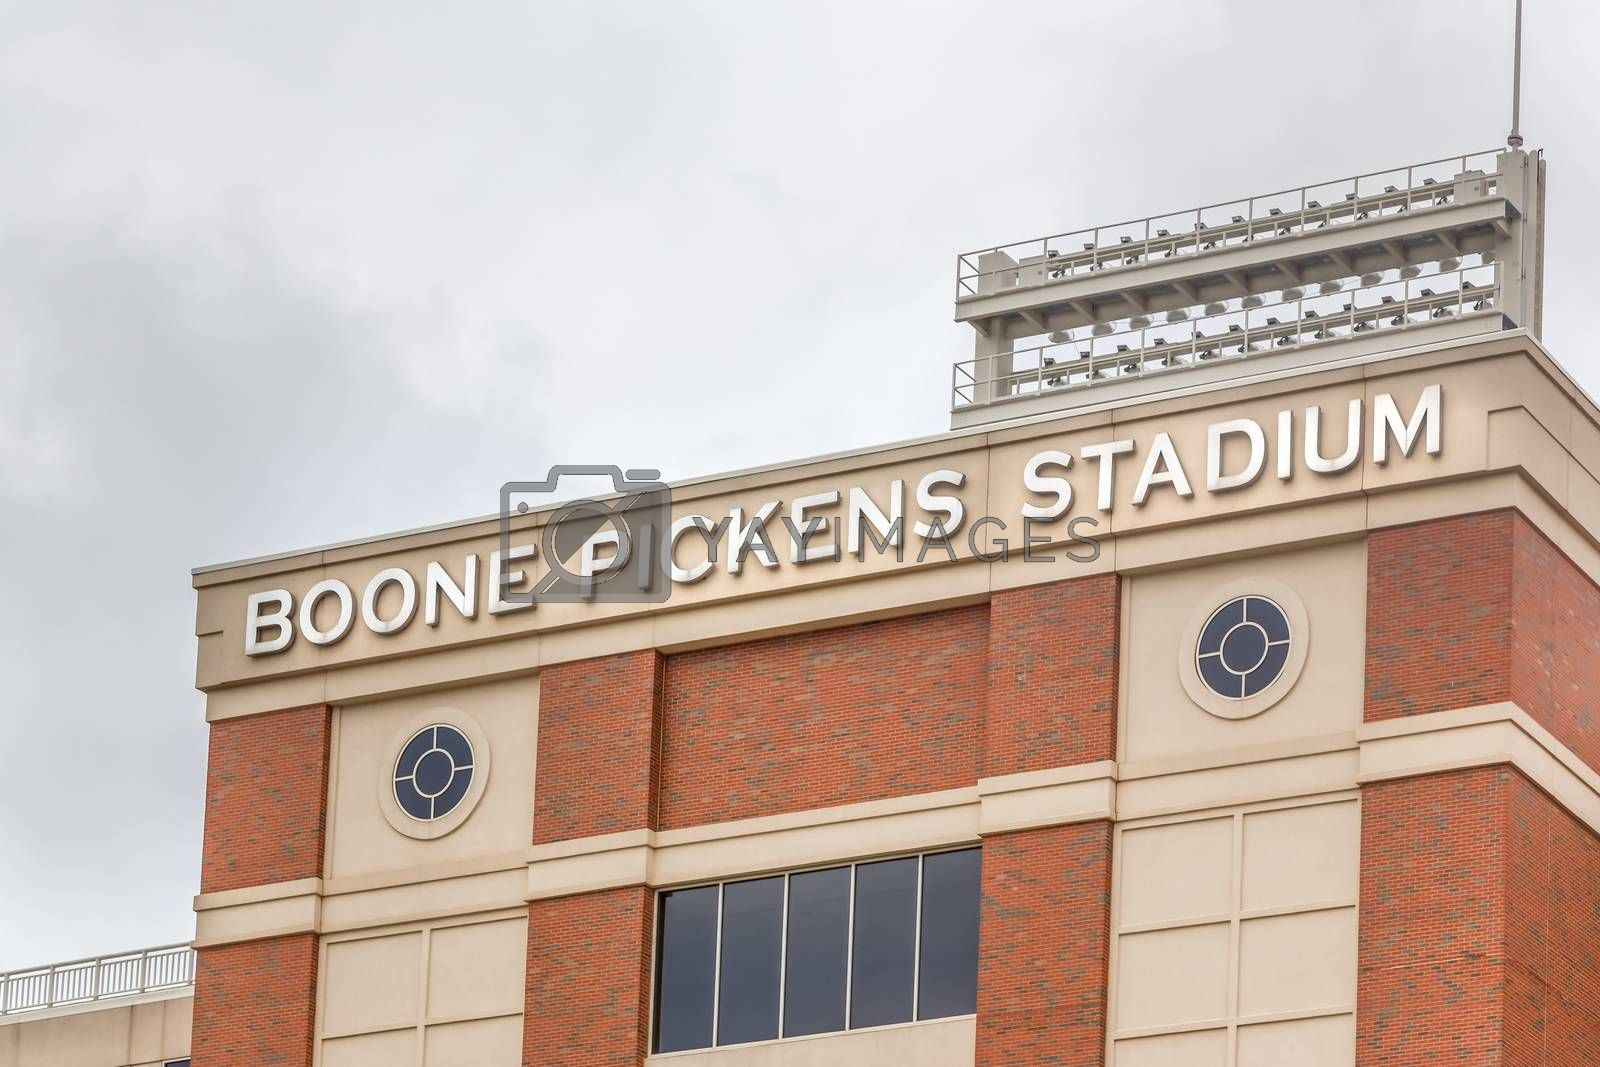 STILLWATER, OK/USA - MAY 20, 2016: Boone Pickens Stadium on the campus of Oklahoma State University.